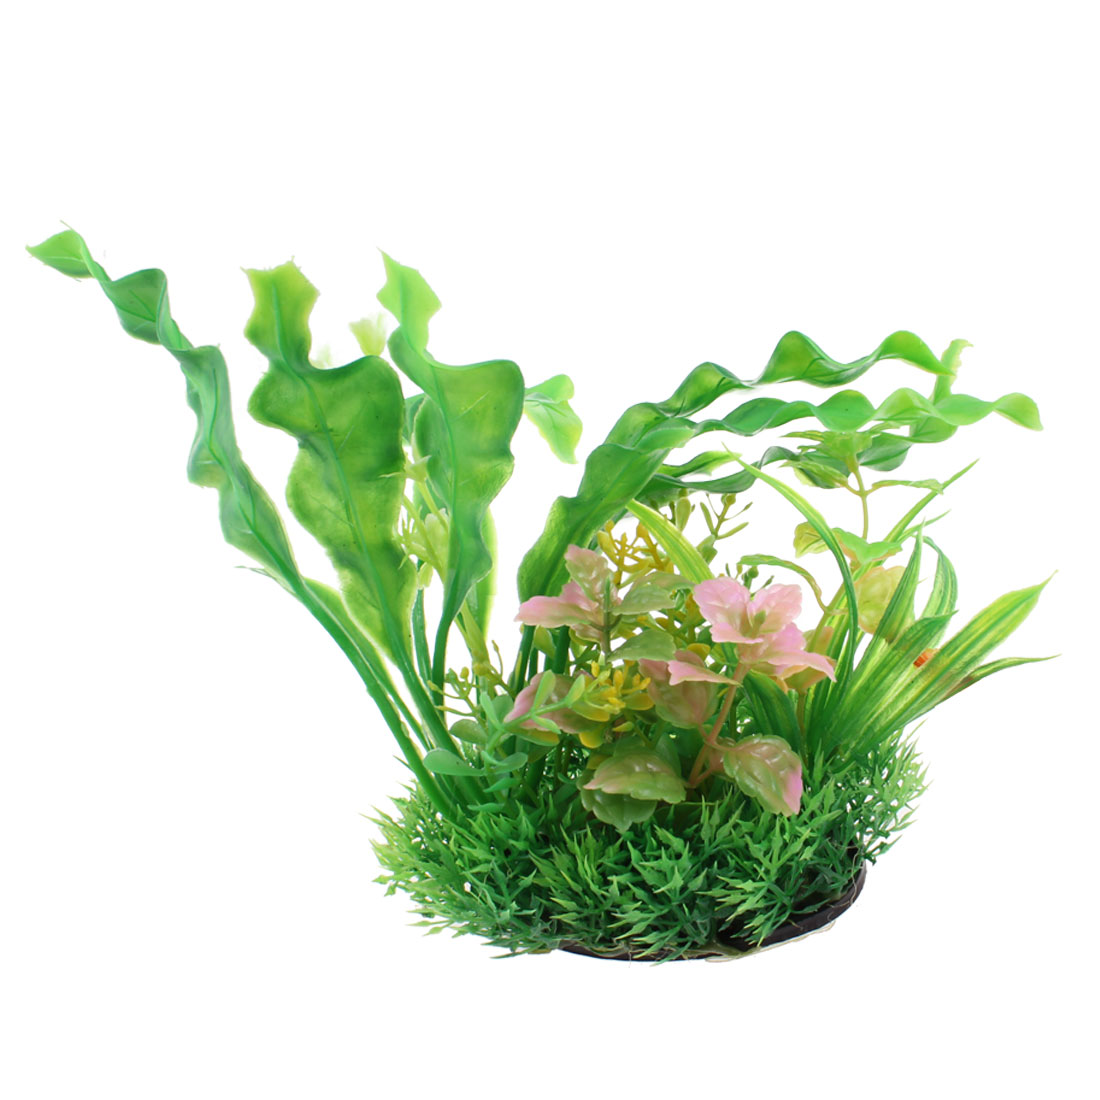 "Aquarium Decoration Green Plastic Underwater Plant Grass 7.1"" Height"